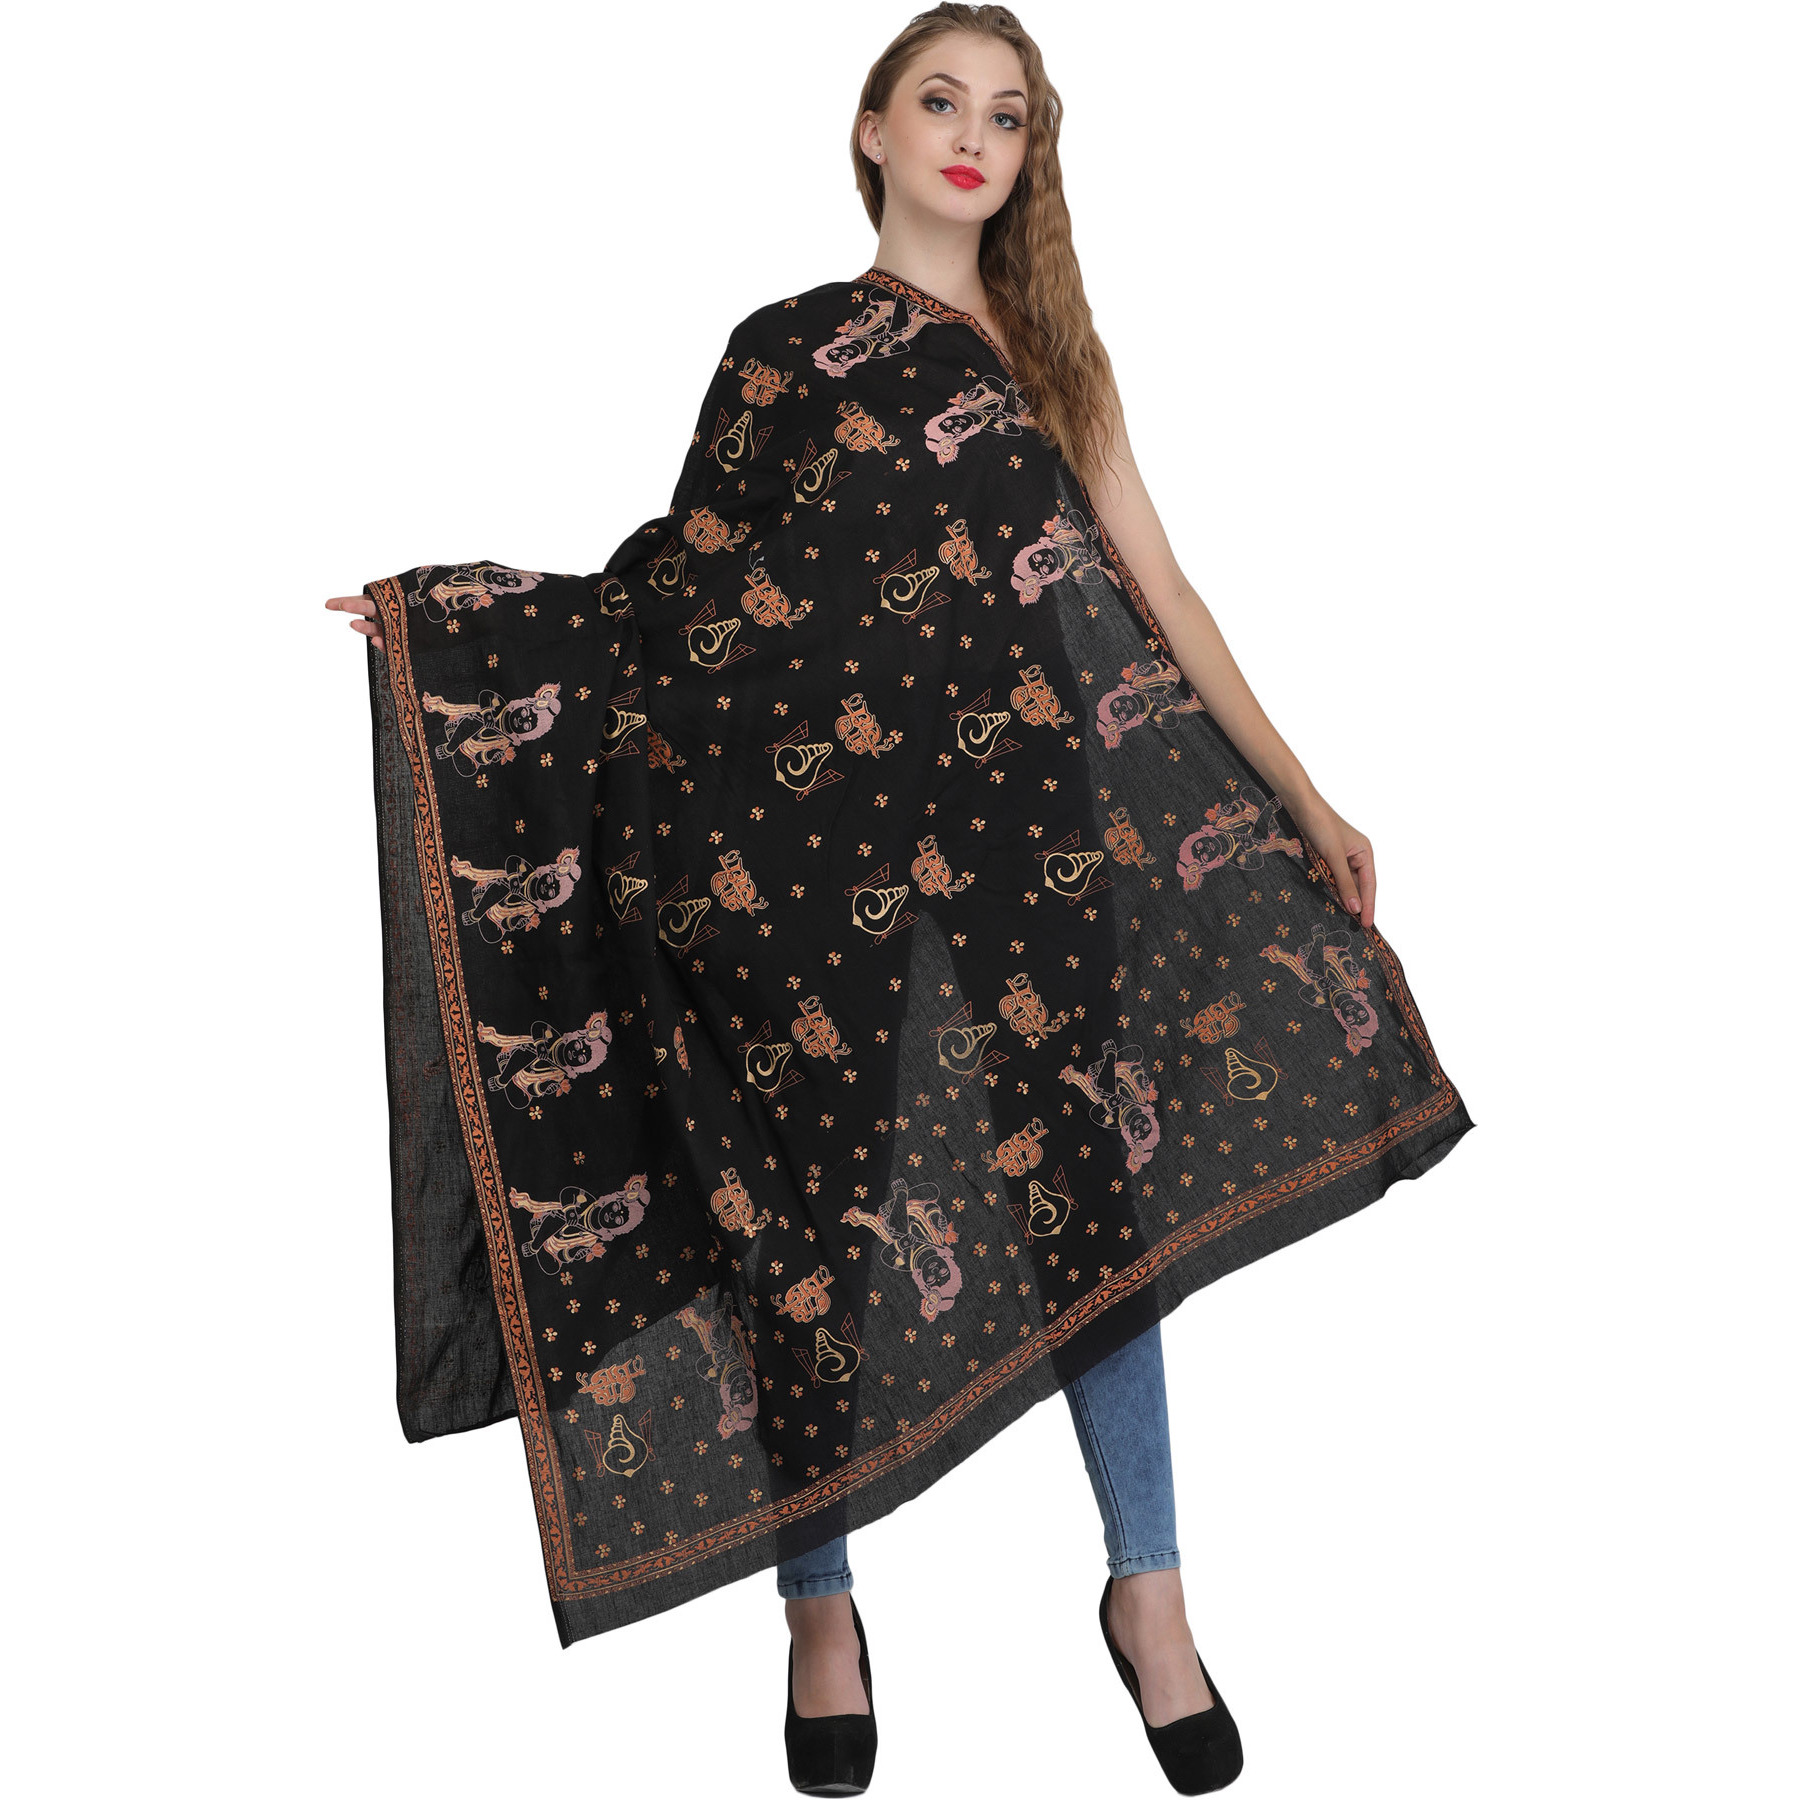 Black Shri Radhey Prayer Shawl with Printed Conch and Little Krishna